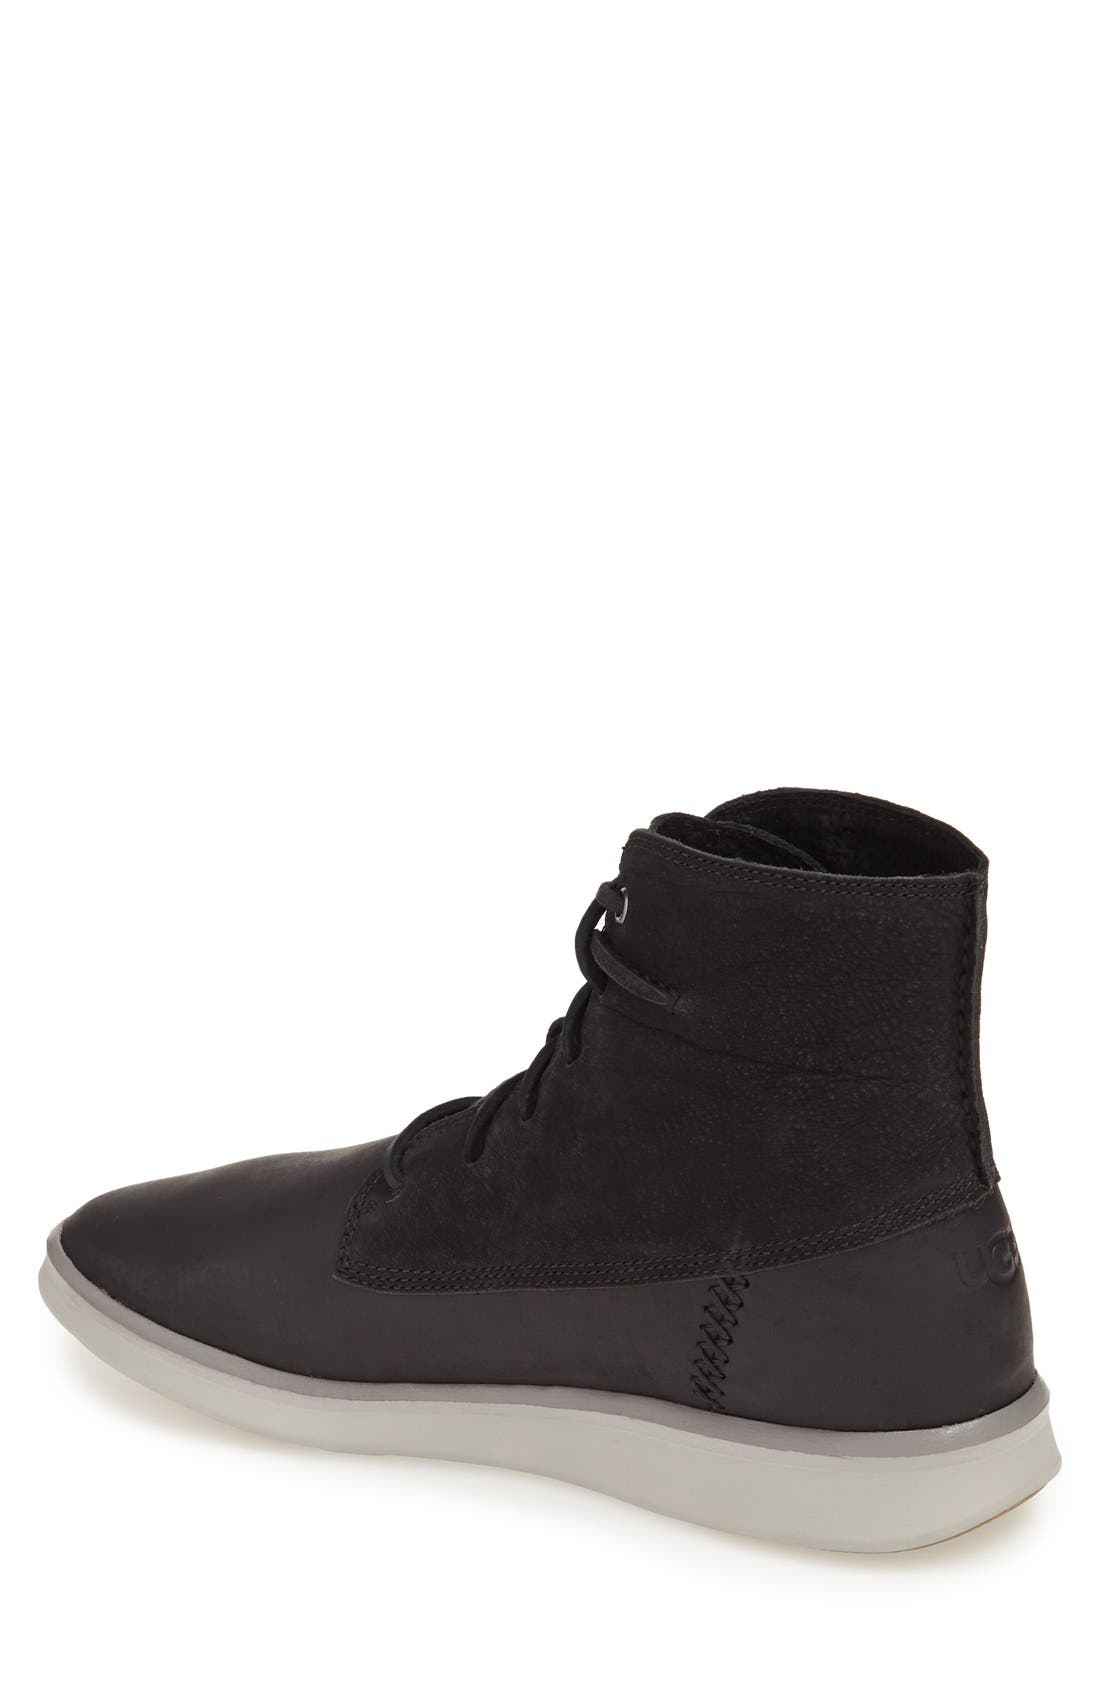 Alternate Image 2  - UGG® 'Lamont' High Top Sneaker (Men)